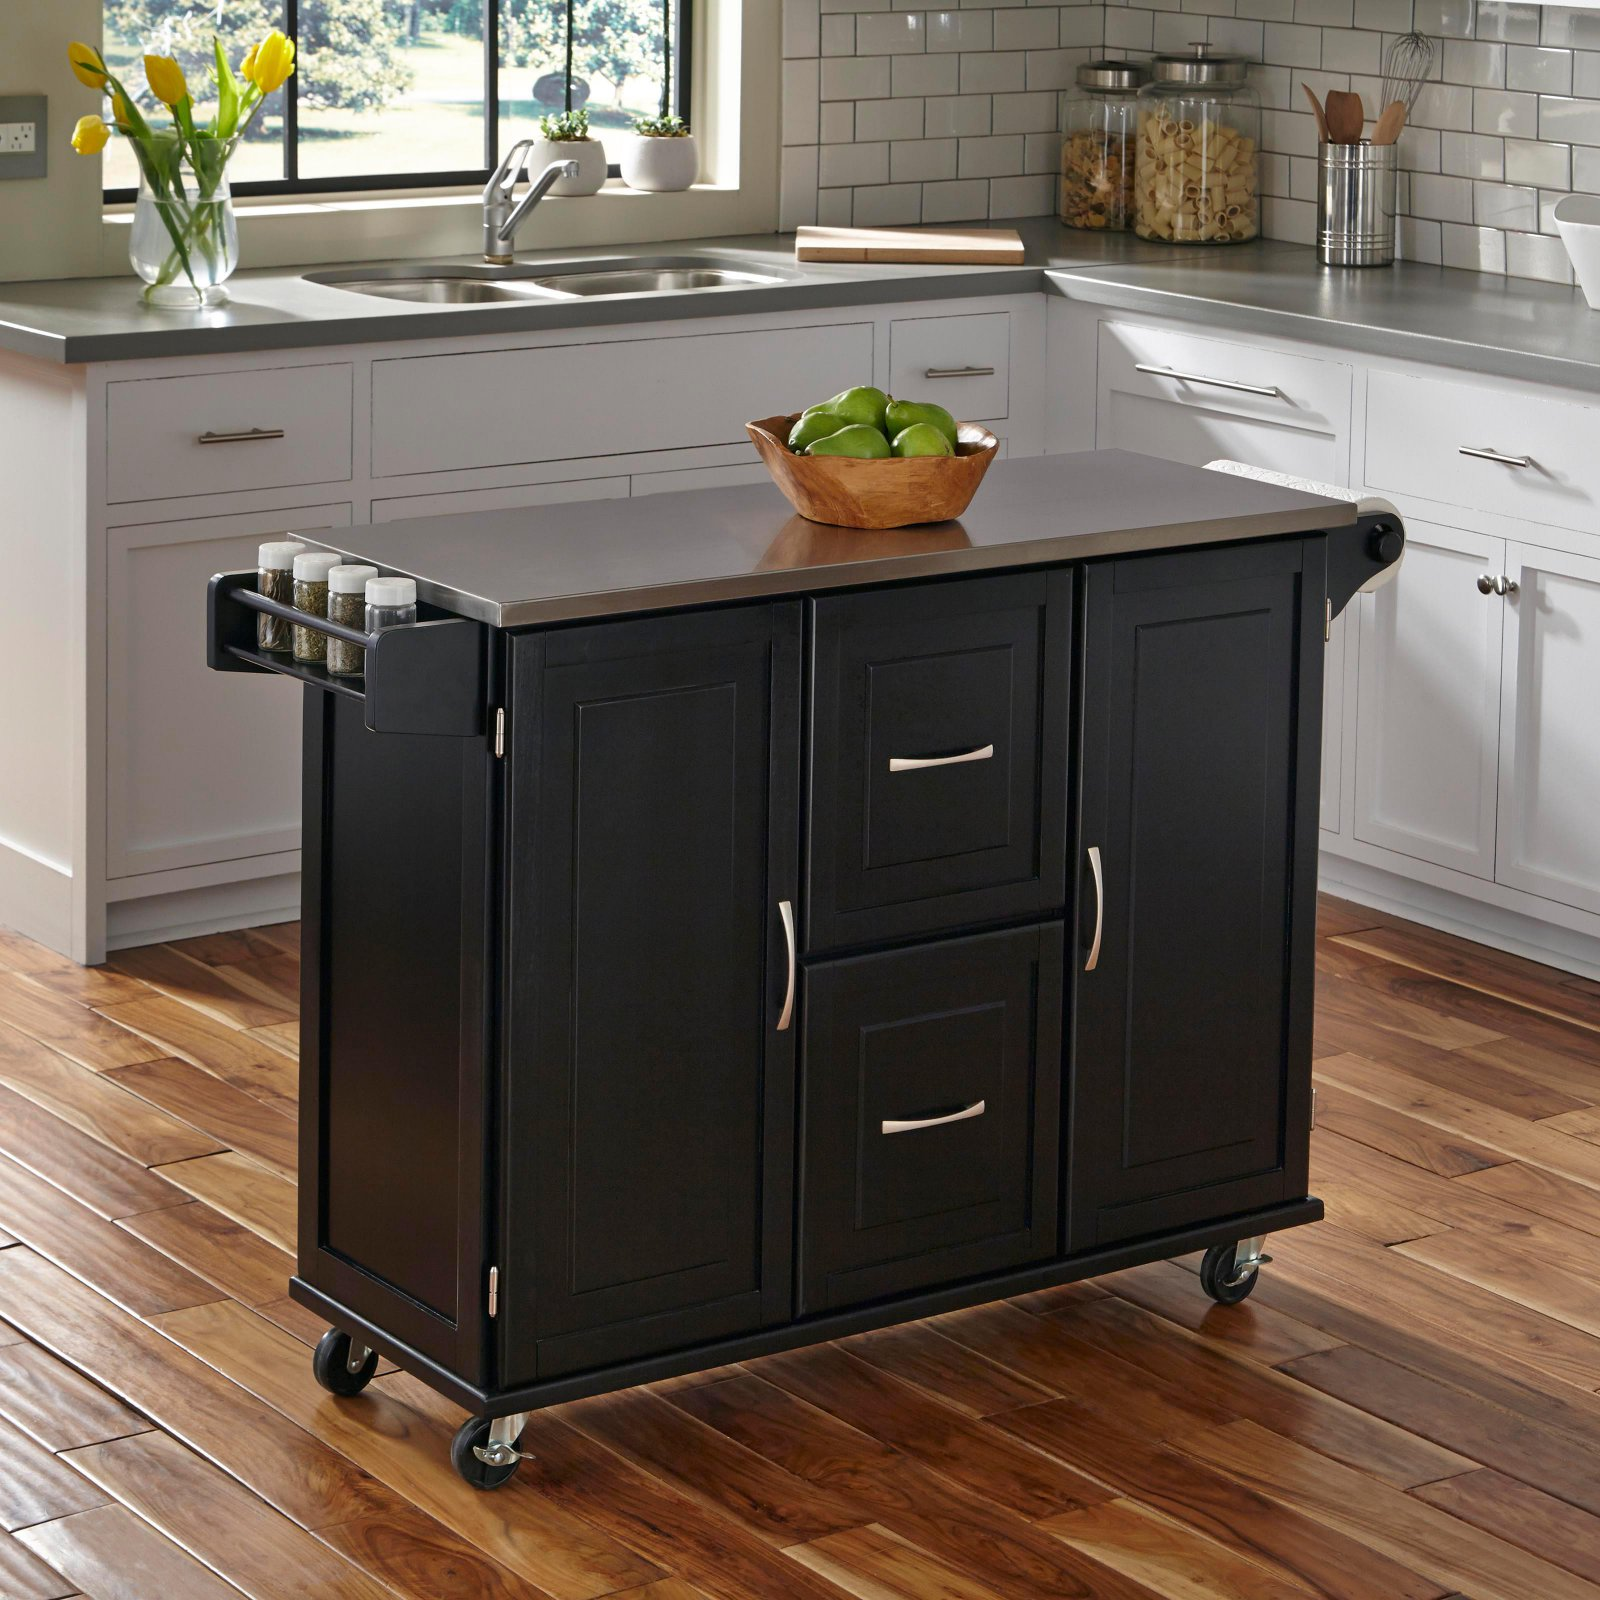 Patriot Kitchen Cart, Black by Home Styles